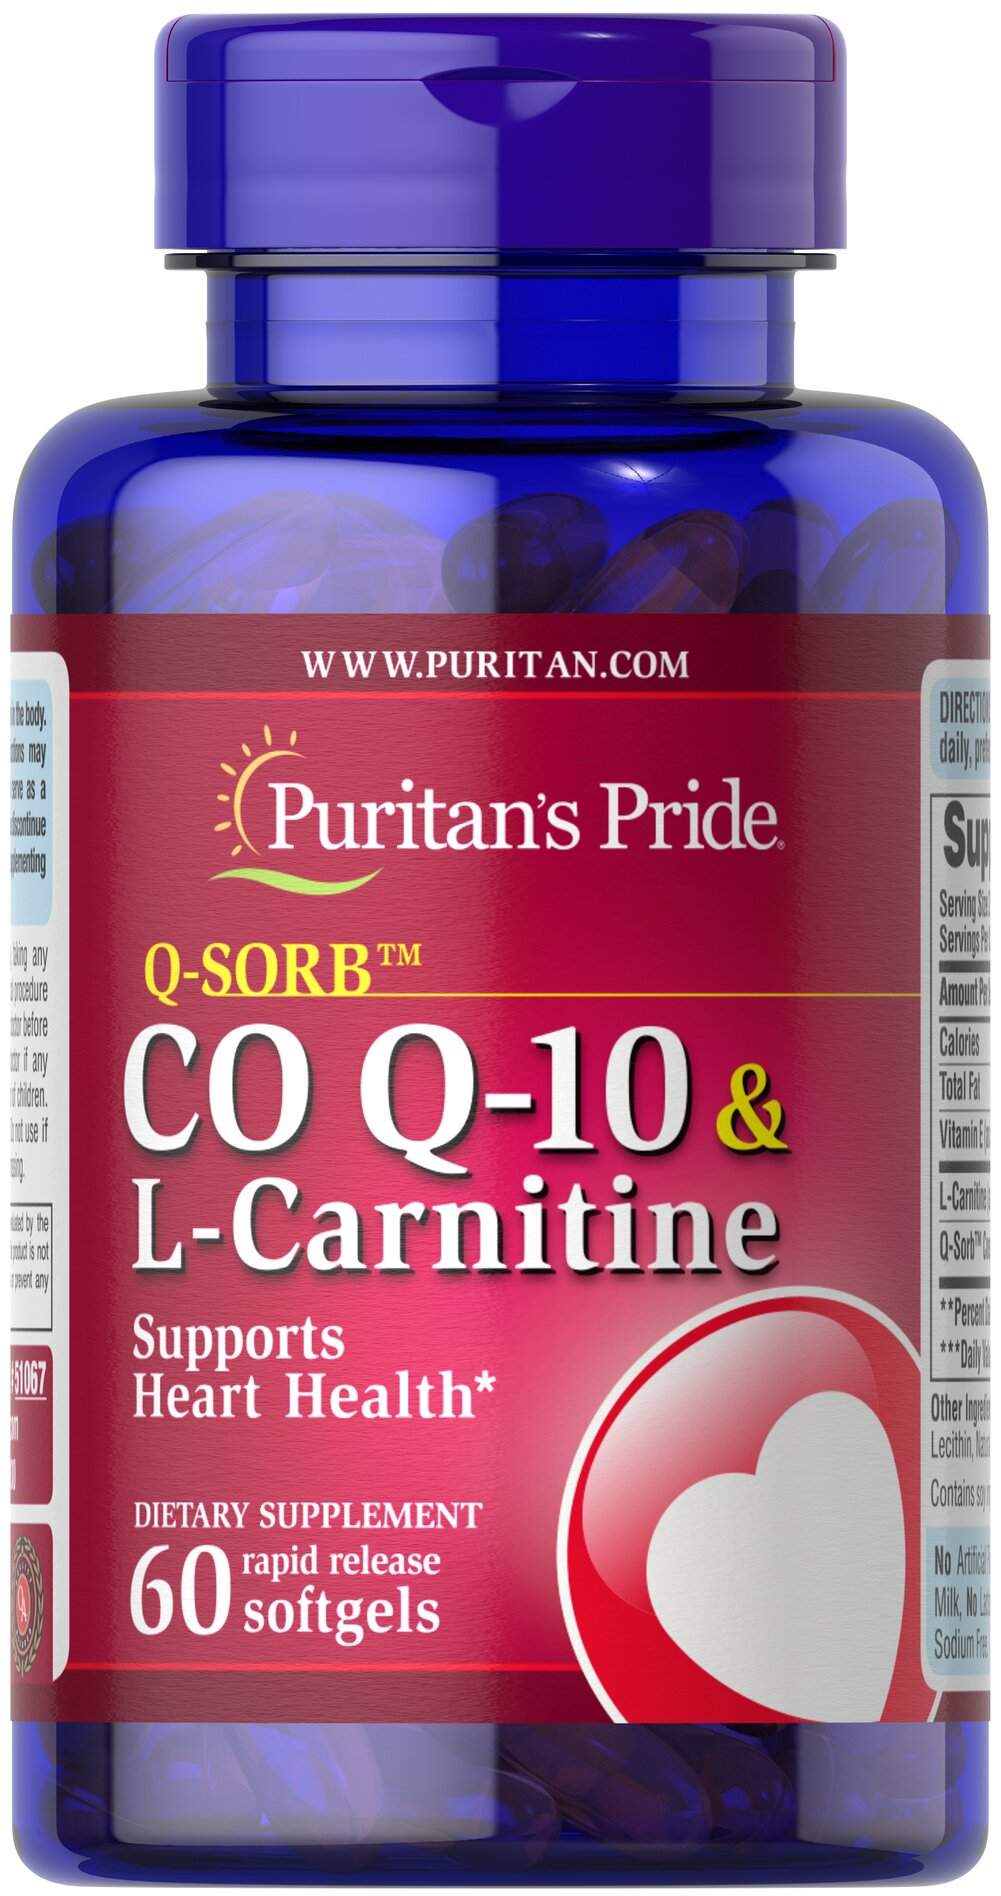 Q-SORB™ Co Q-10 30 mg plus L-Carnitine 250 mg